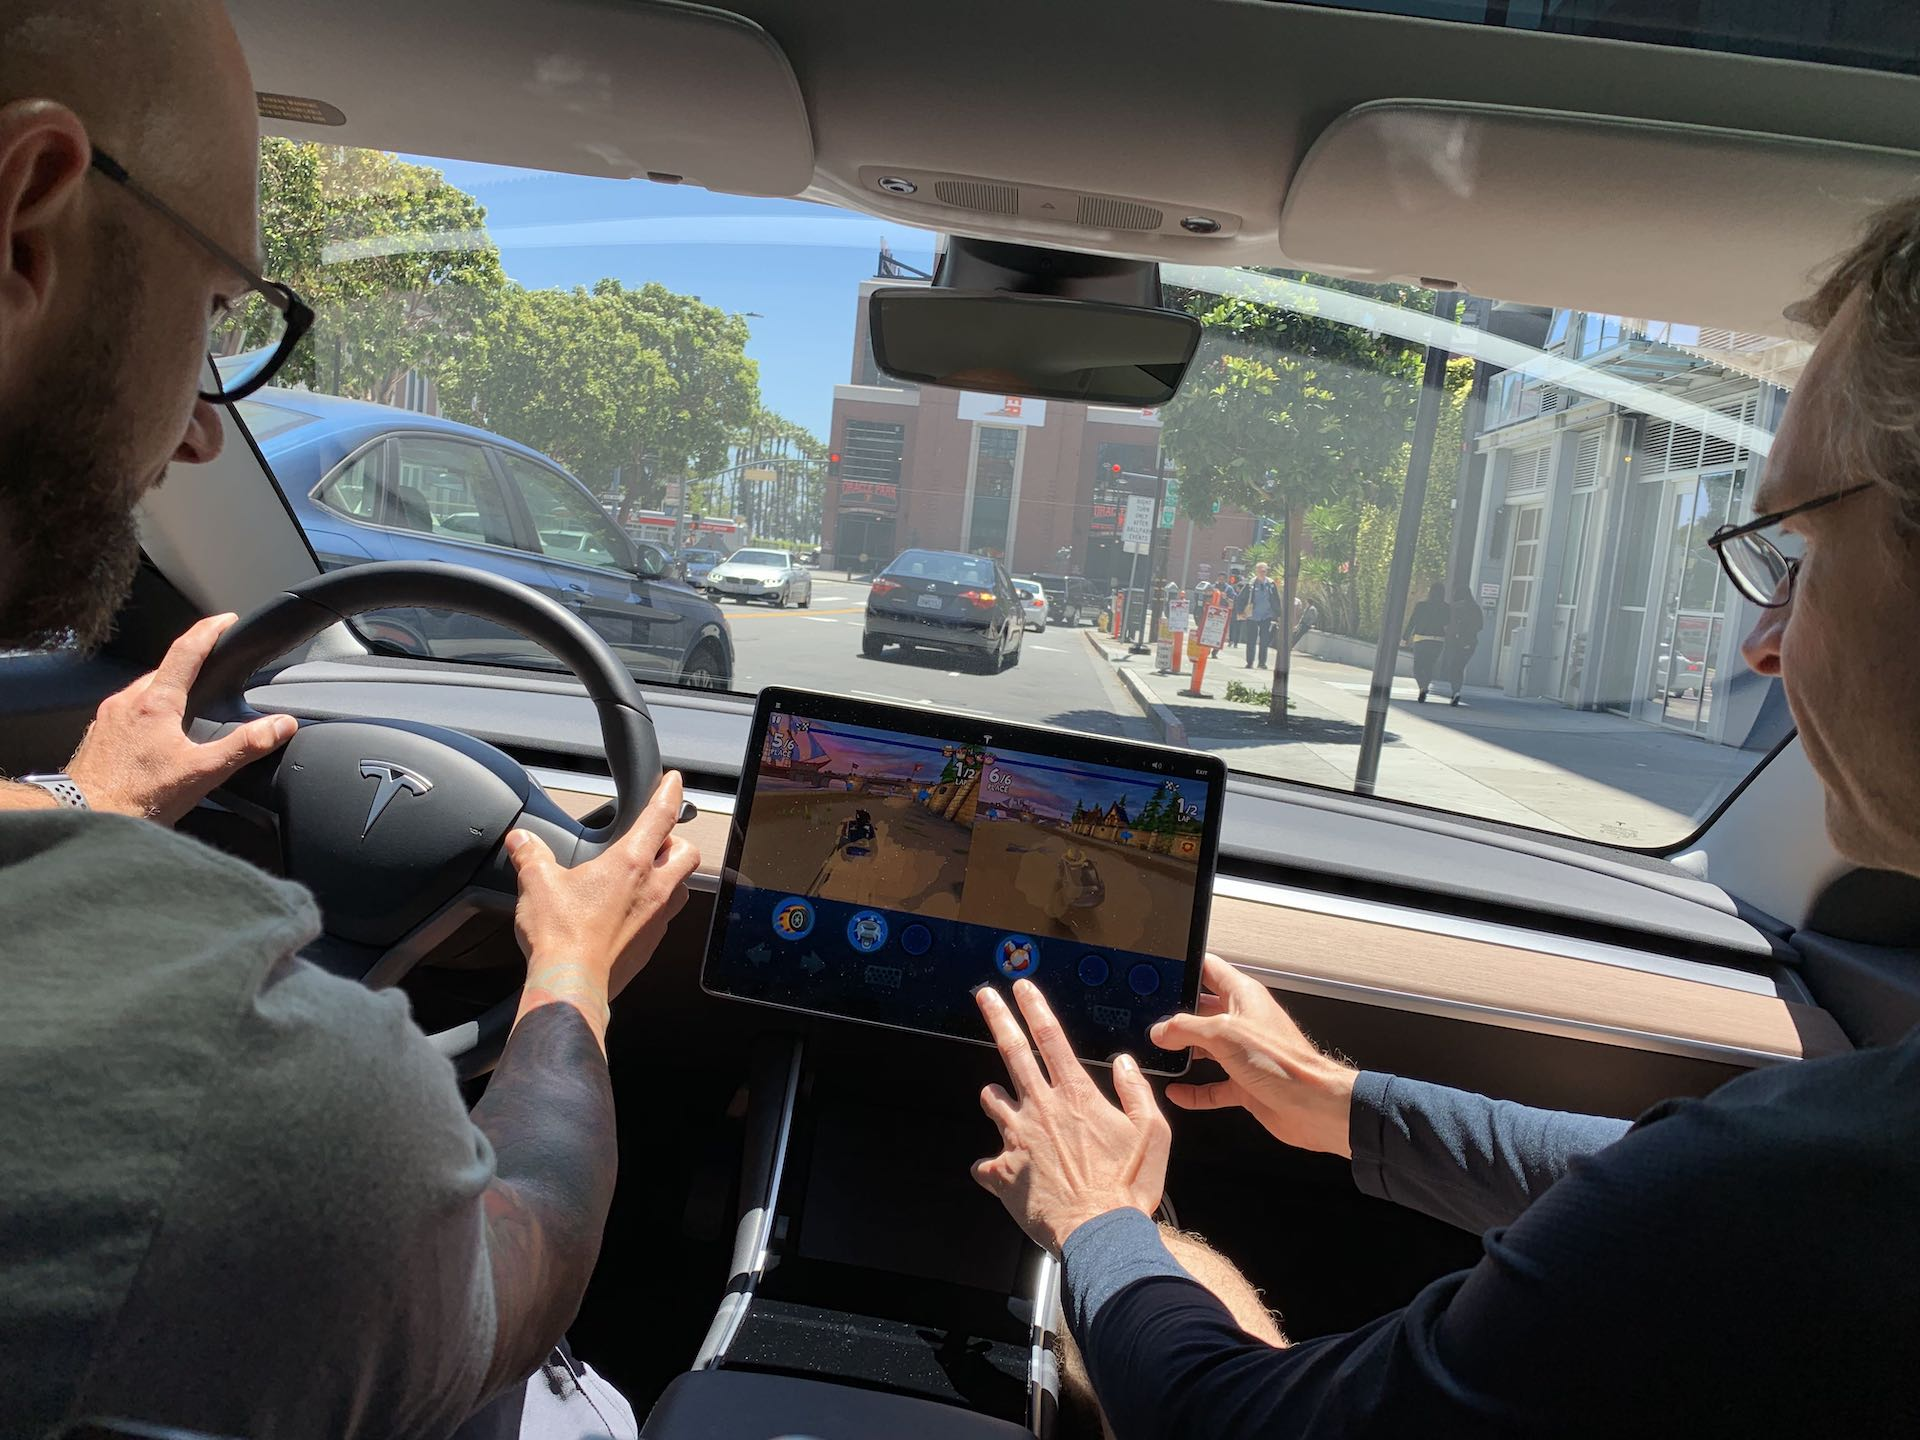 Tesla Arcade is priming us for the self-driving future, we just don't know it yet